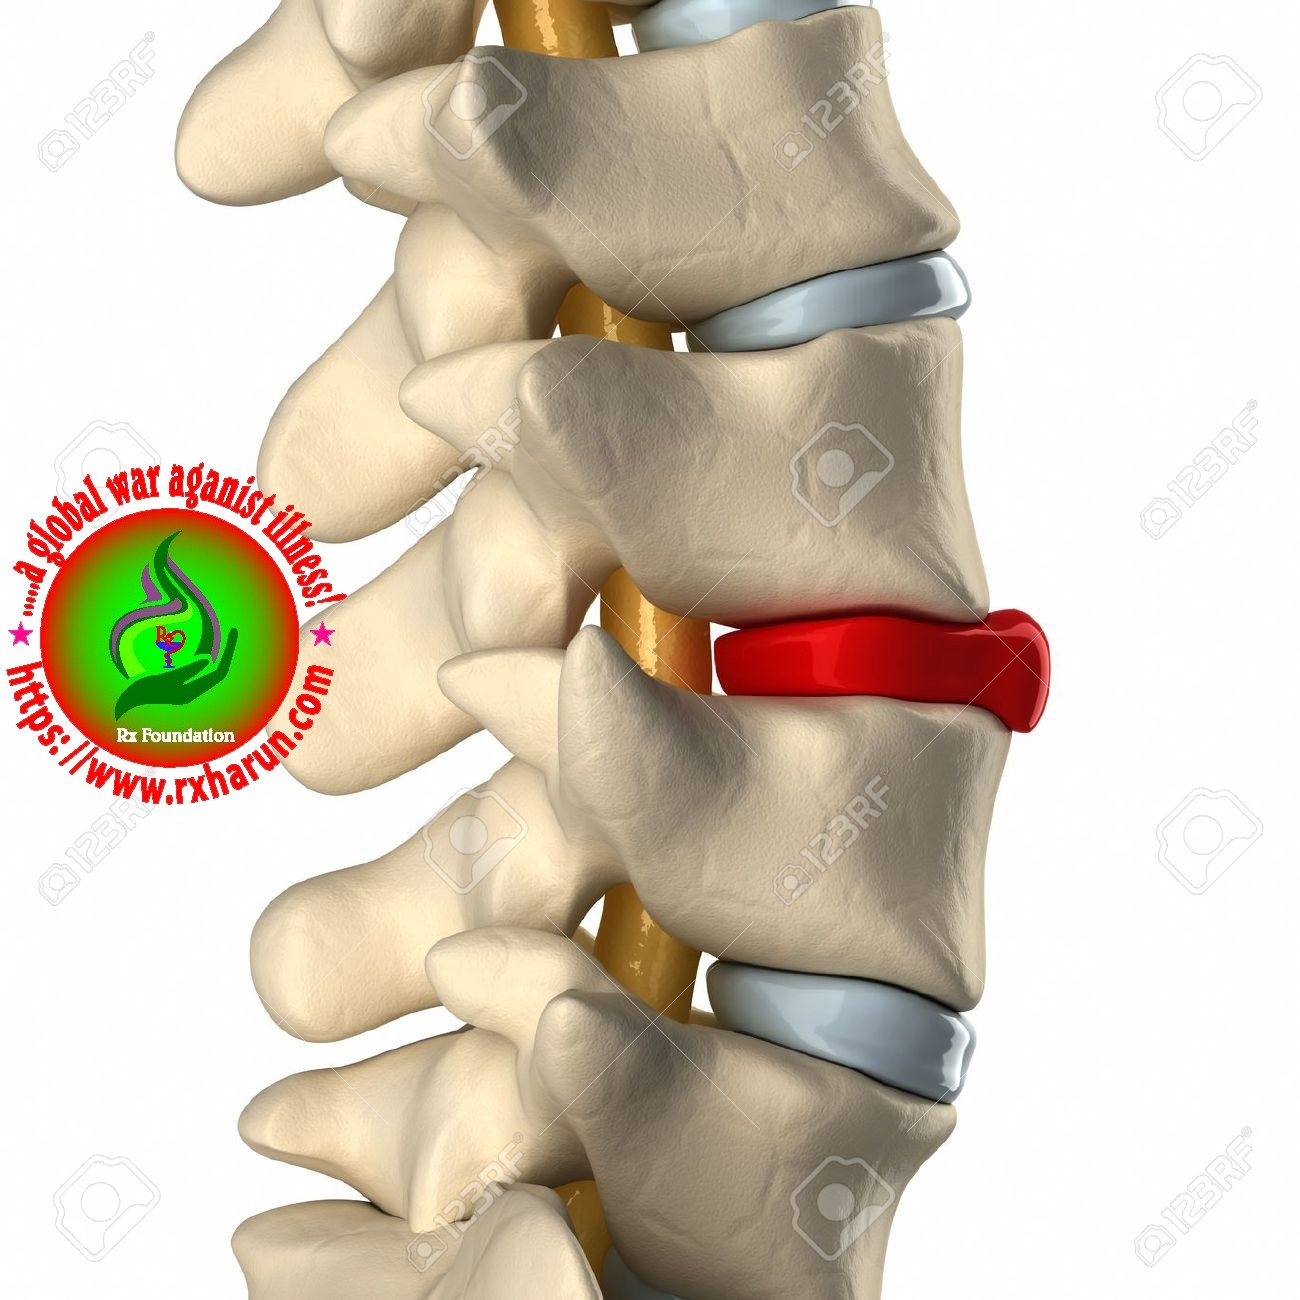 C4 and C5 Disc Herniation, C4 and C5 Disc Herniation – Causes, Symptoms, Treatment,